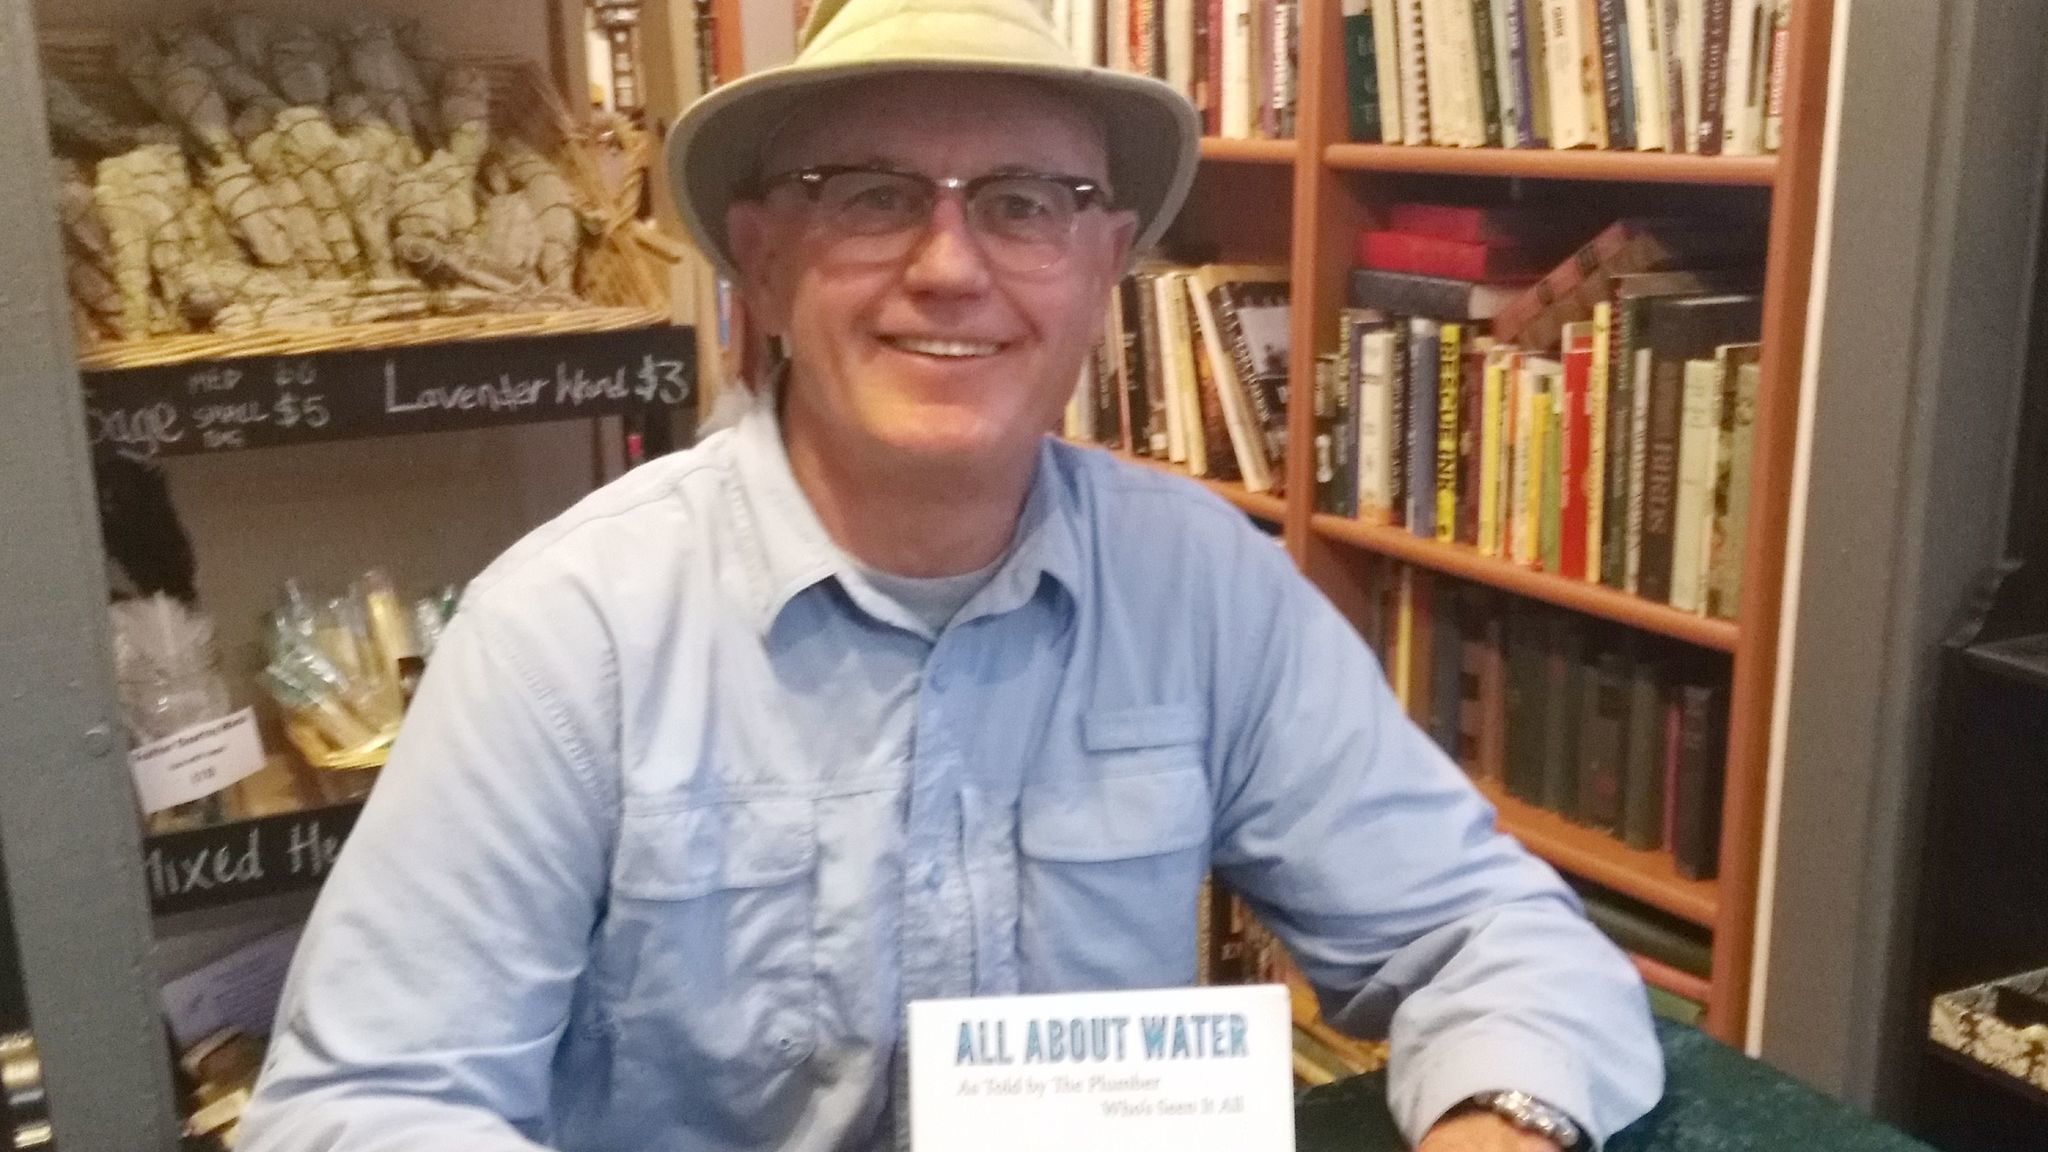 "Ramona's Plumber owner Greg Chick explains topics in his new book, ""All About Water as Told by The Plumber Who's Seen It All,"" at a book-signing Feb. 7 in Unicorn Books and Gifts."